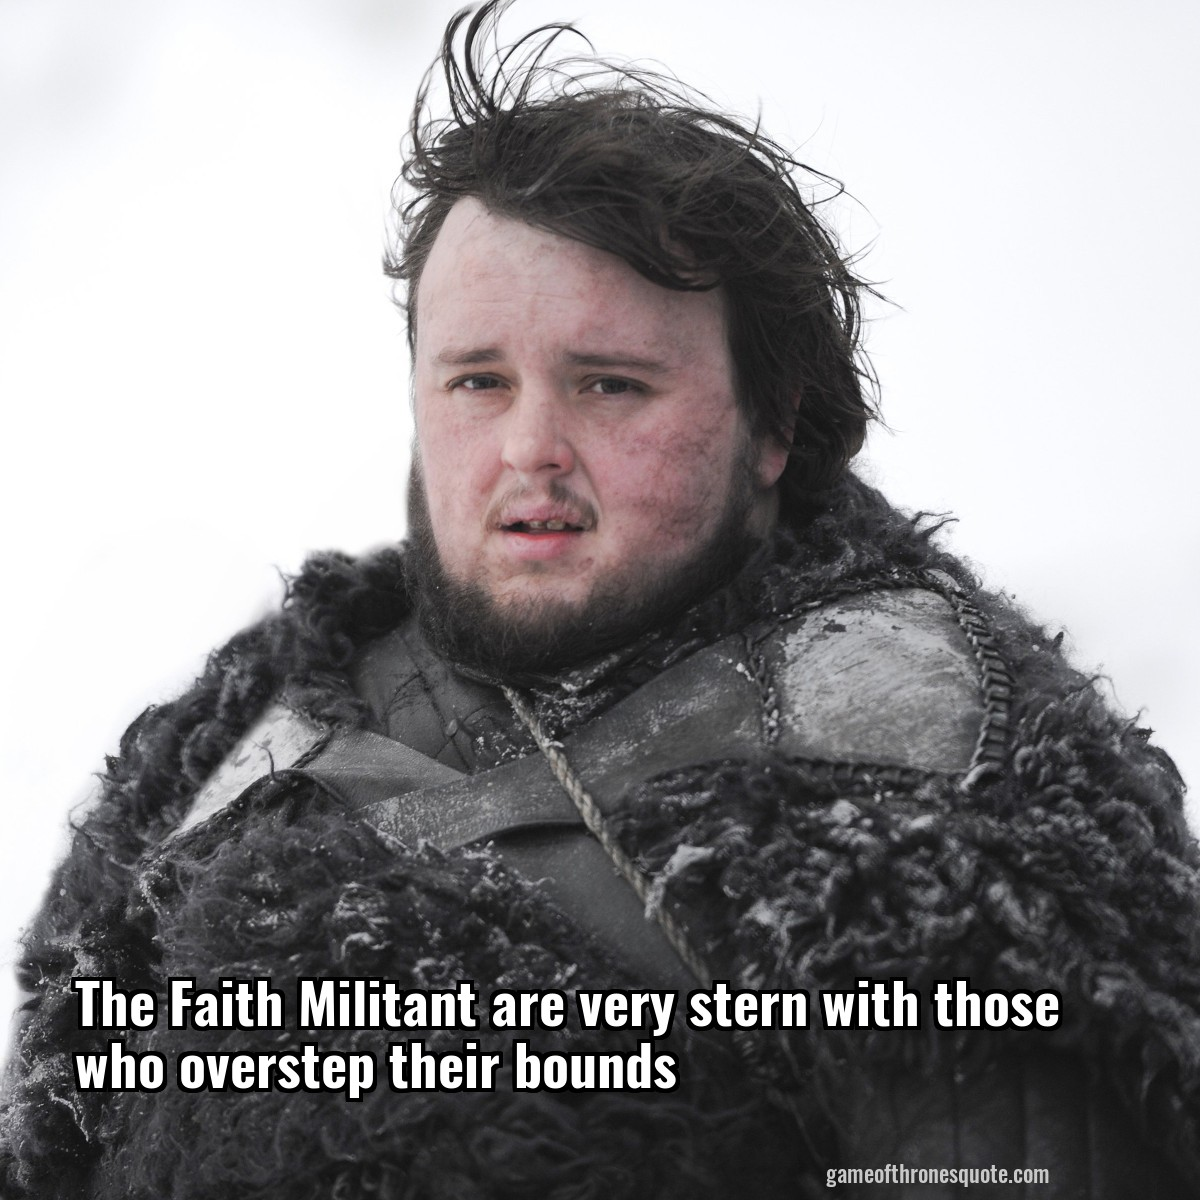 The Faith Militant are very stern with those who overstep their bounds